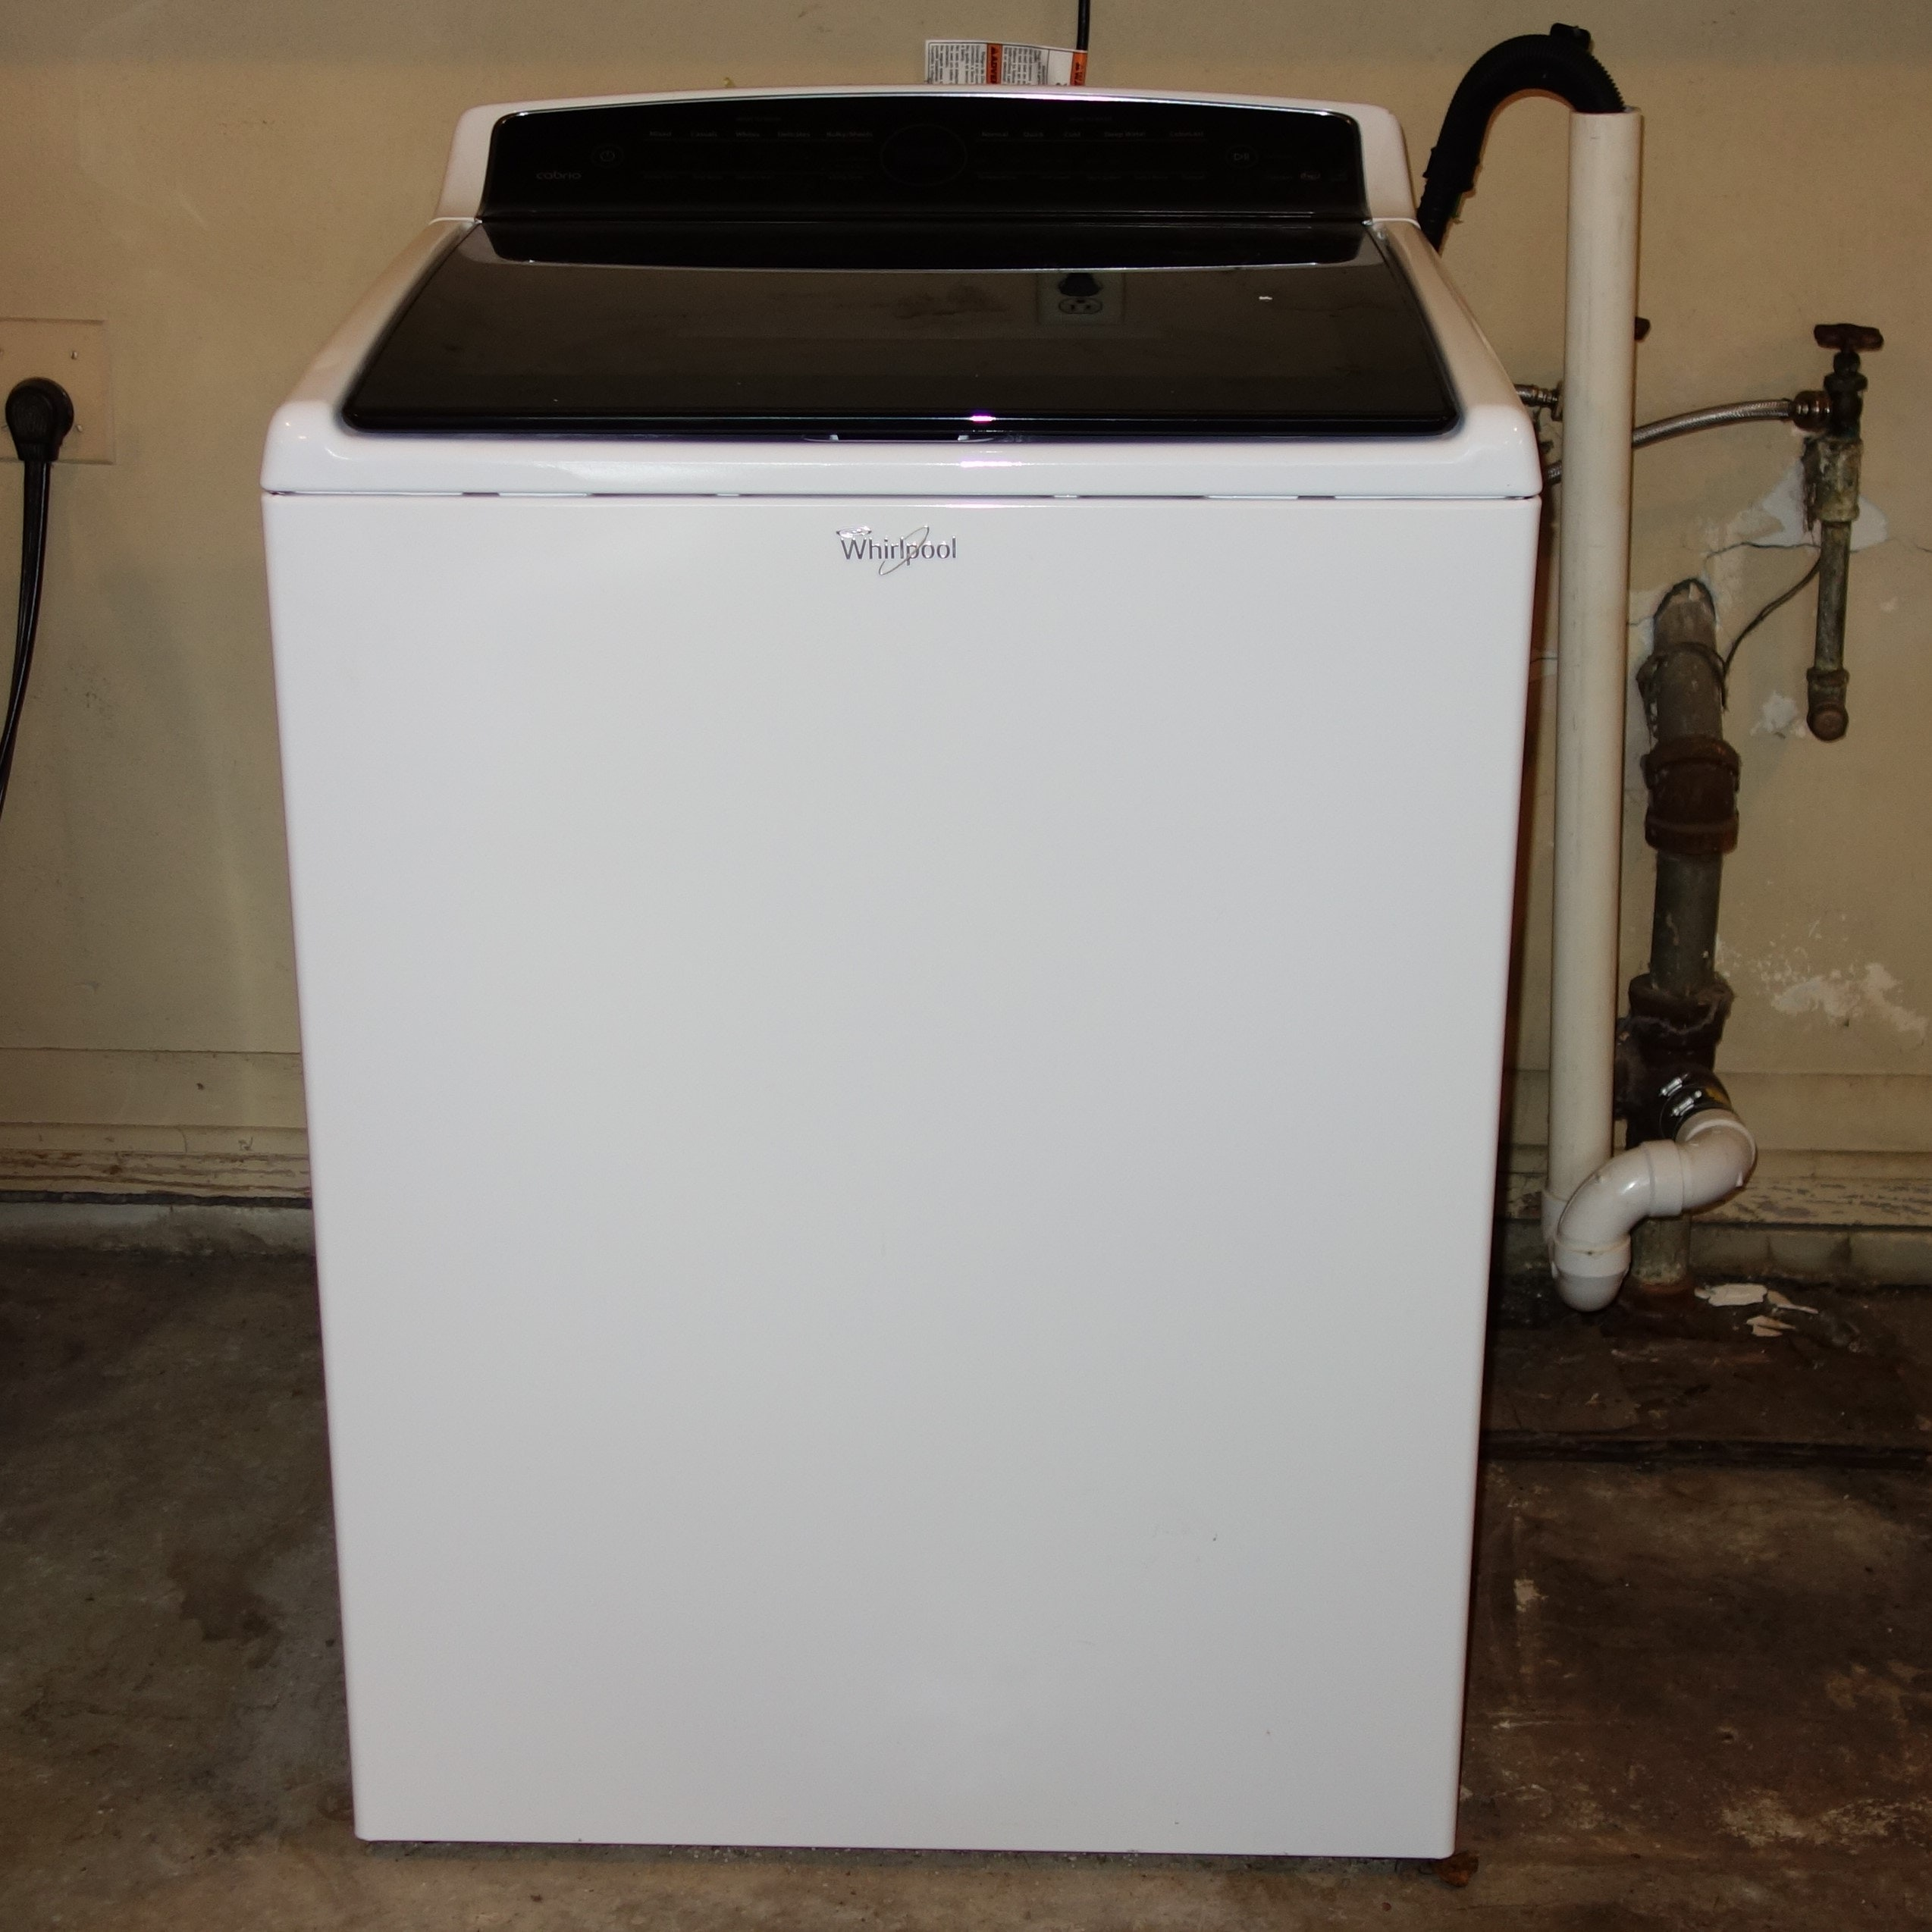 Newer Whirlpool Top Loading Washing Machine